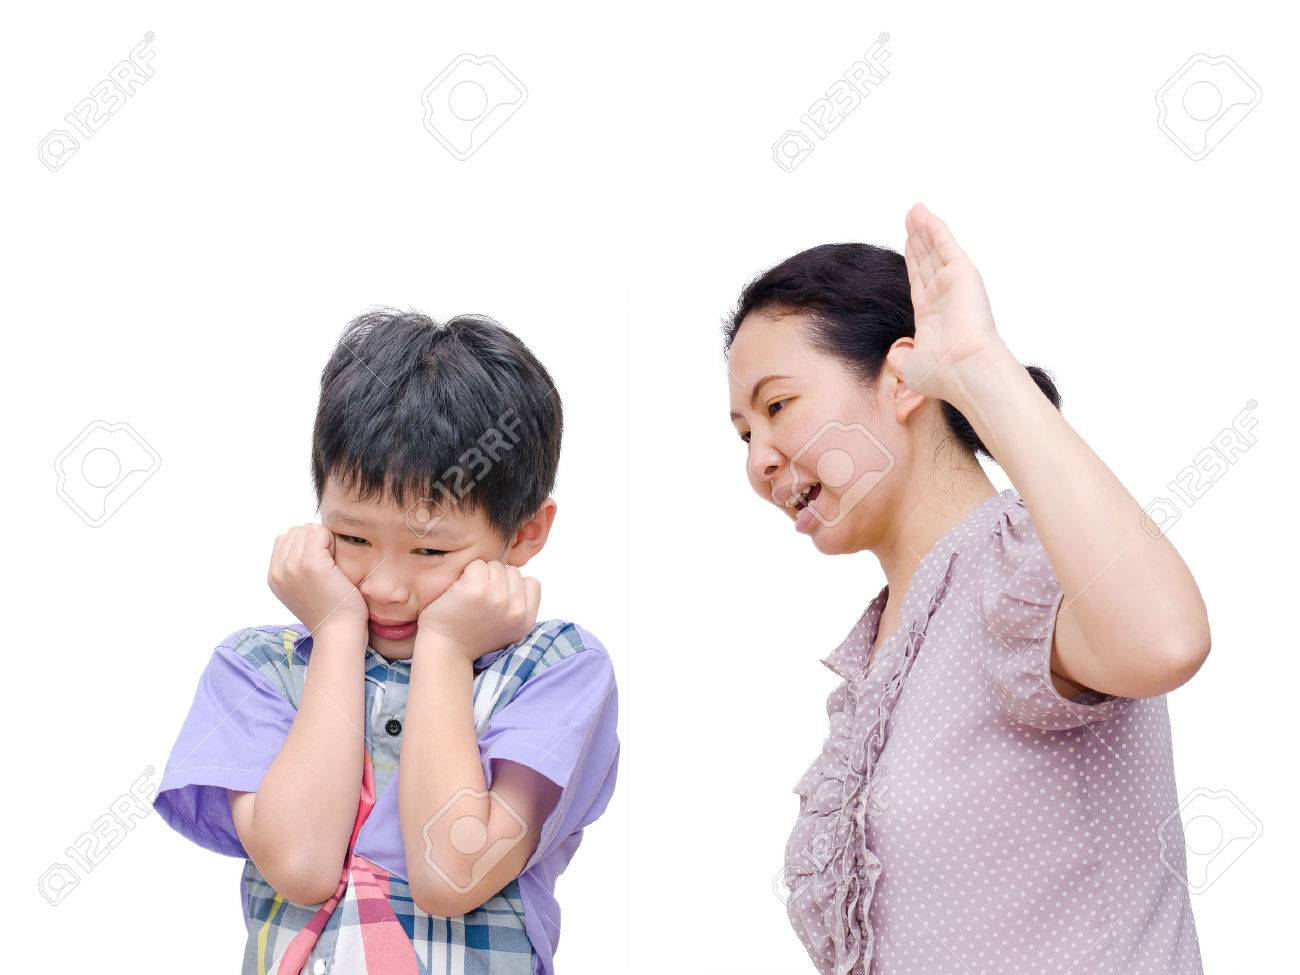 Mother Being Physically Abusive Towards Son Over White Background Stock Photo - 36232931